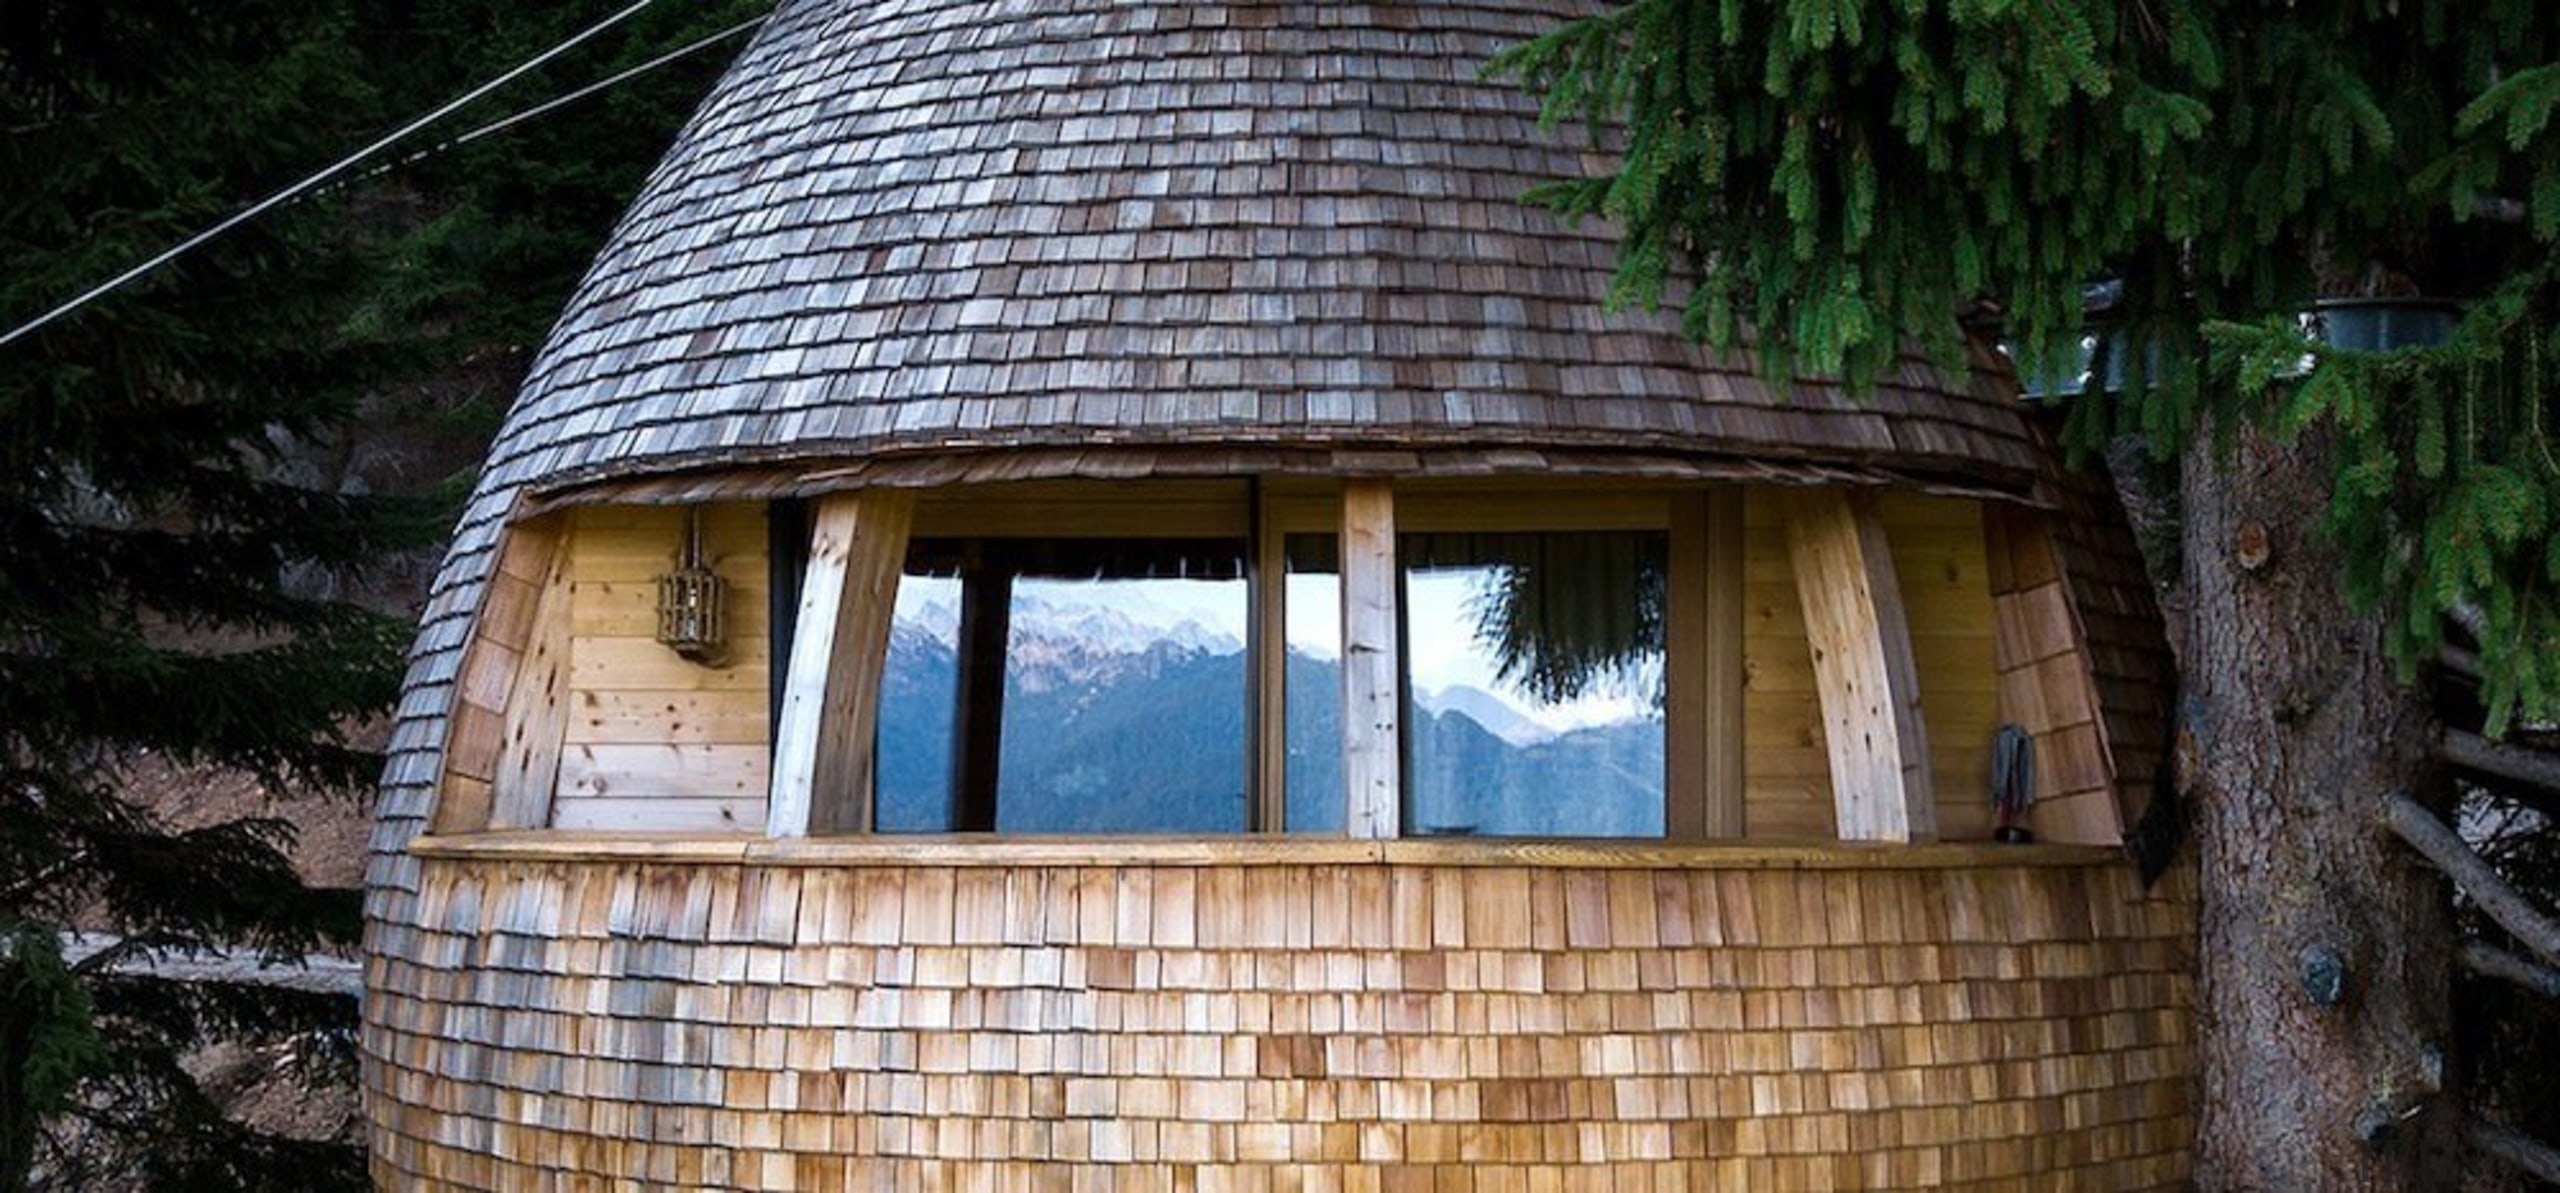 A balcony with unmatched views - A balcony cottage, facade, home, house, hut, log cabin, shack, shed, tree, window, wood, black